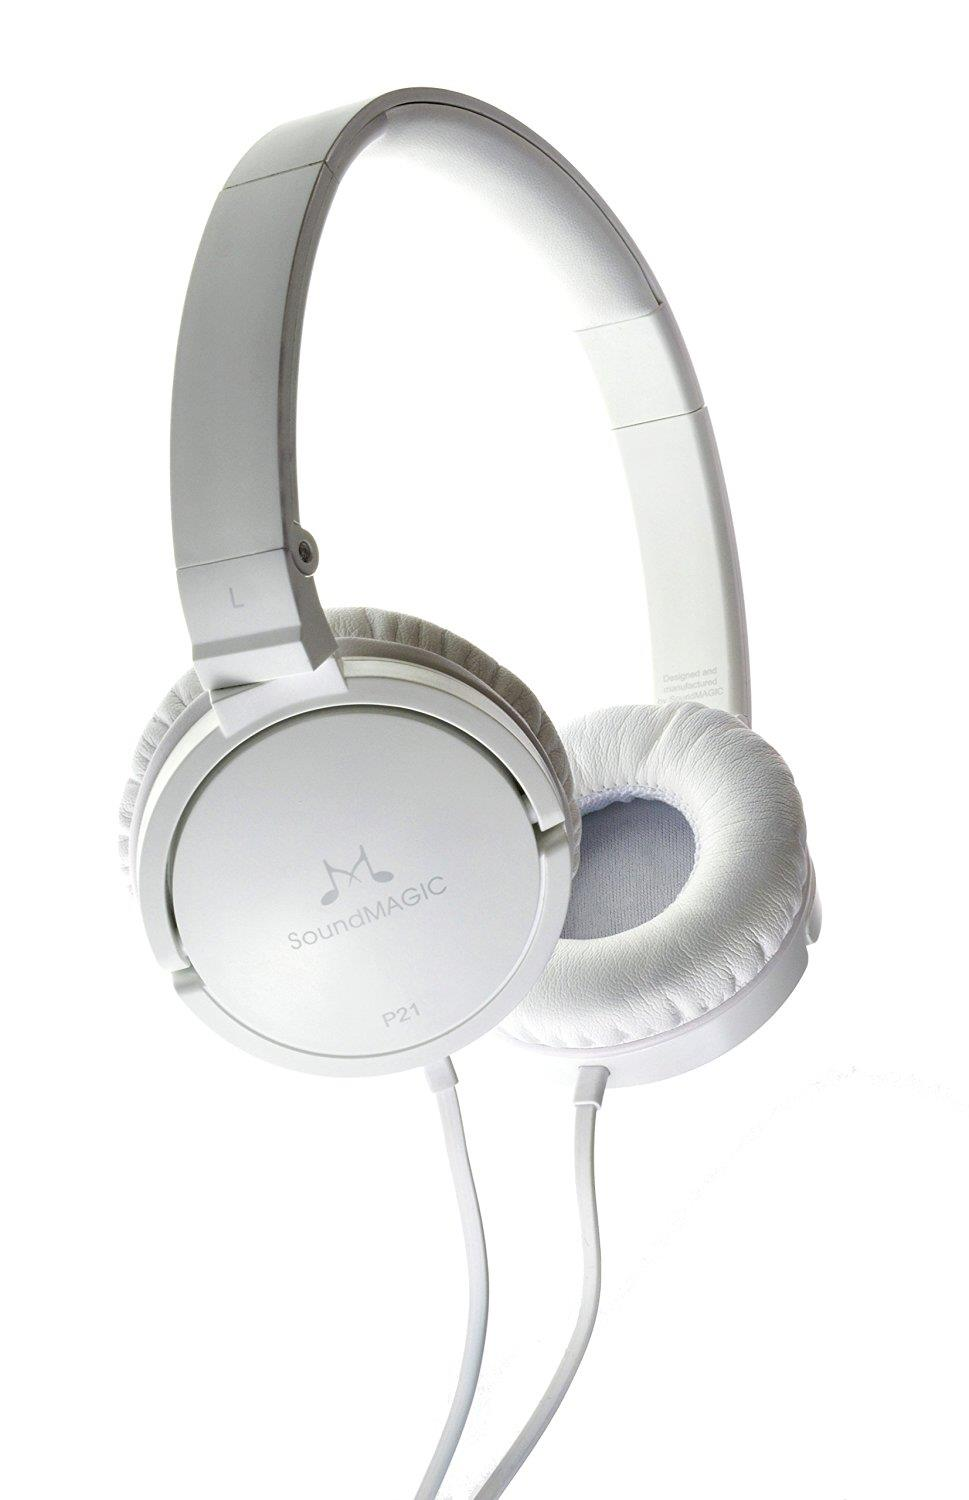 SoundMAGIC P21 On-Ear Headphones (White)